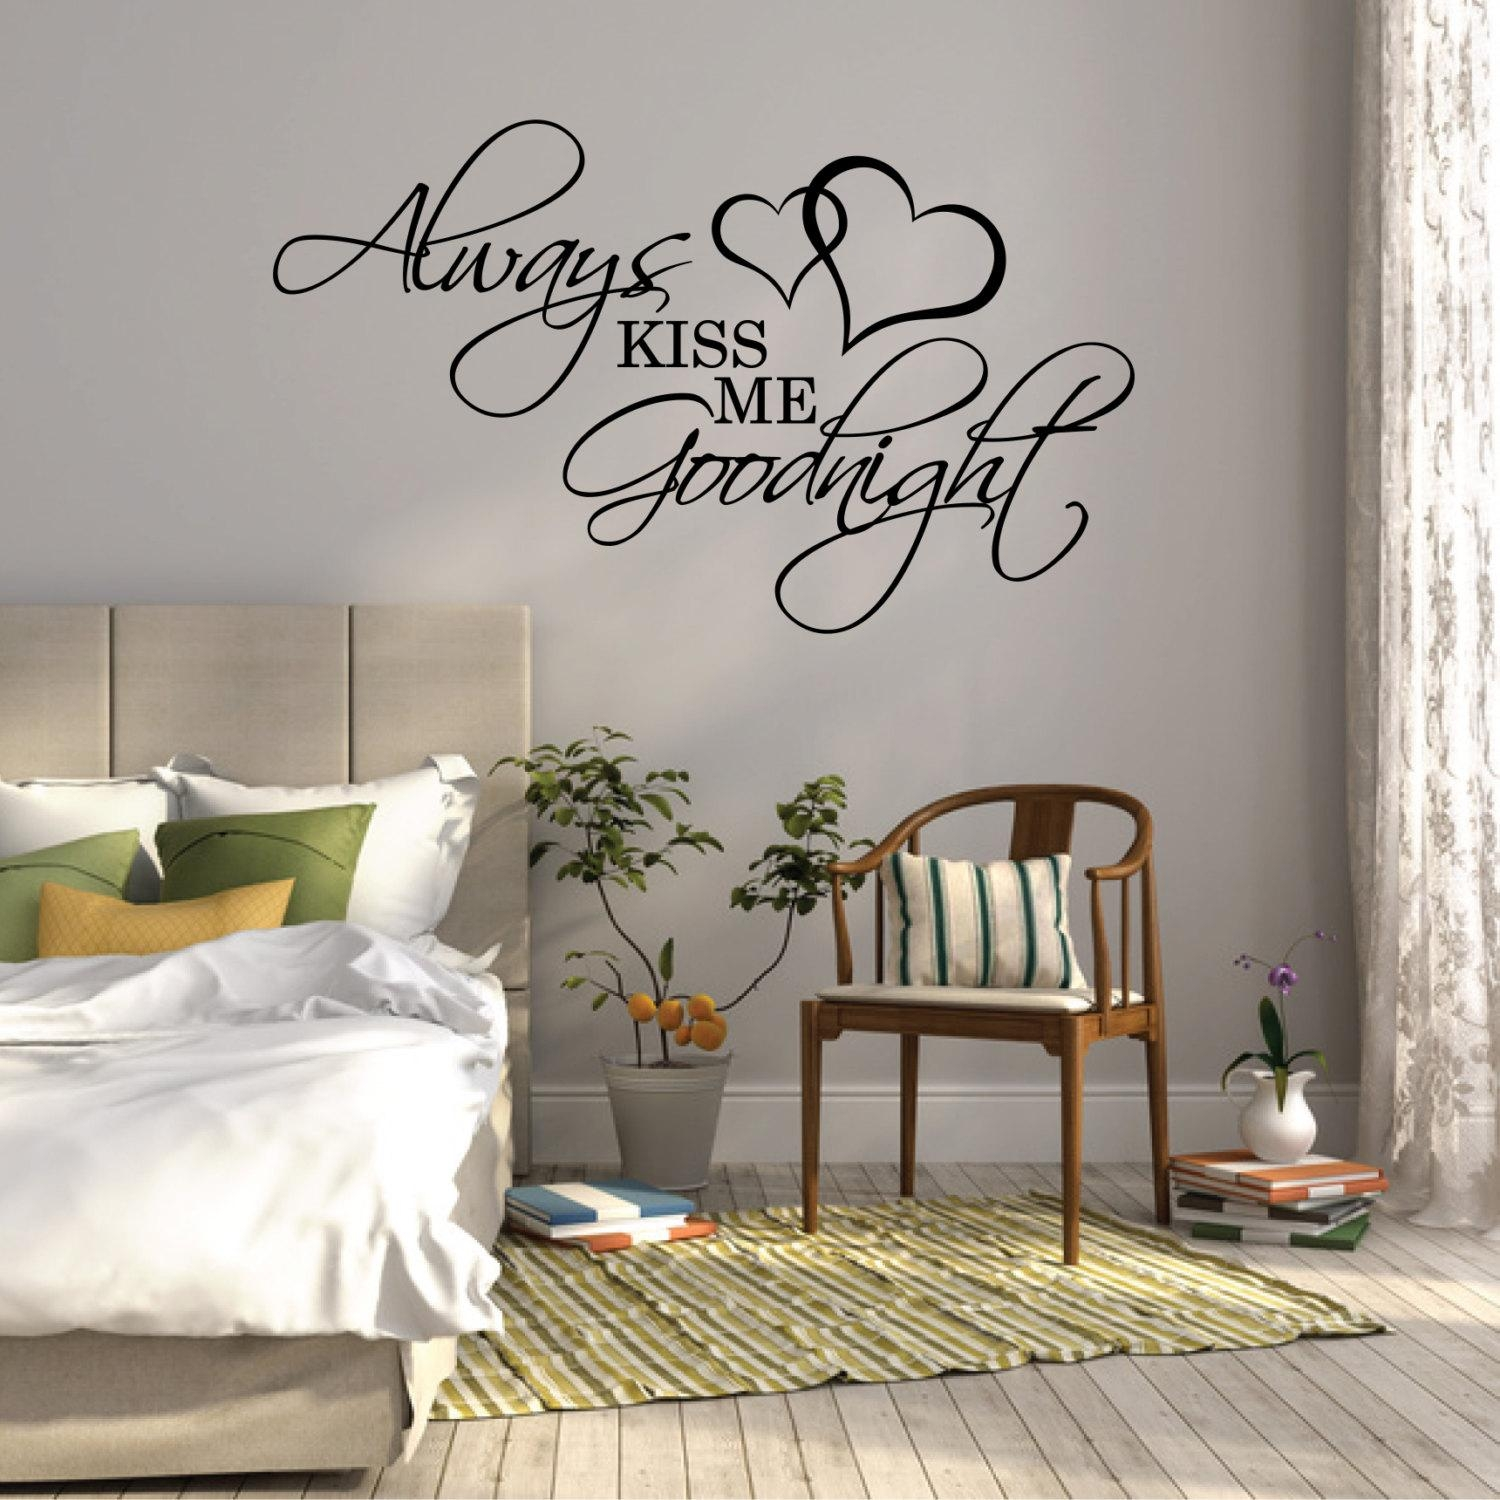 Wall Sticker Quote Always Kiss Me Goodnight Over Bed Wall With Regard To Wall Art Over Bed (Image 20 of 20)